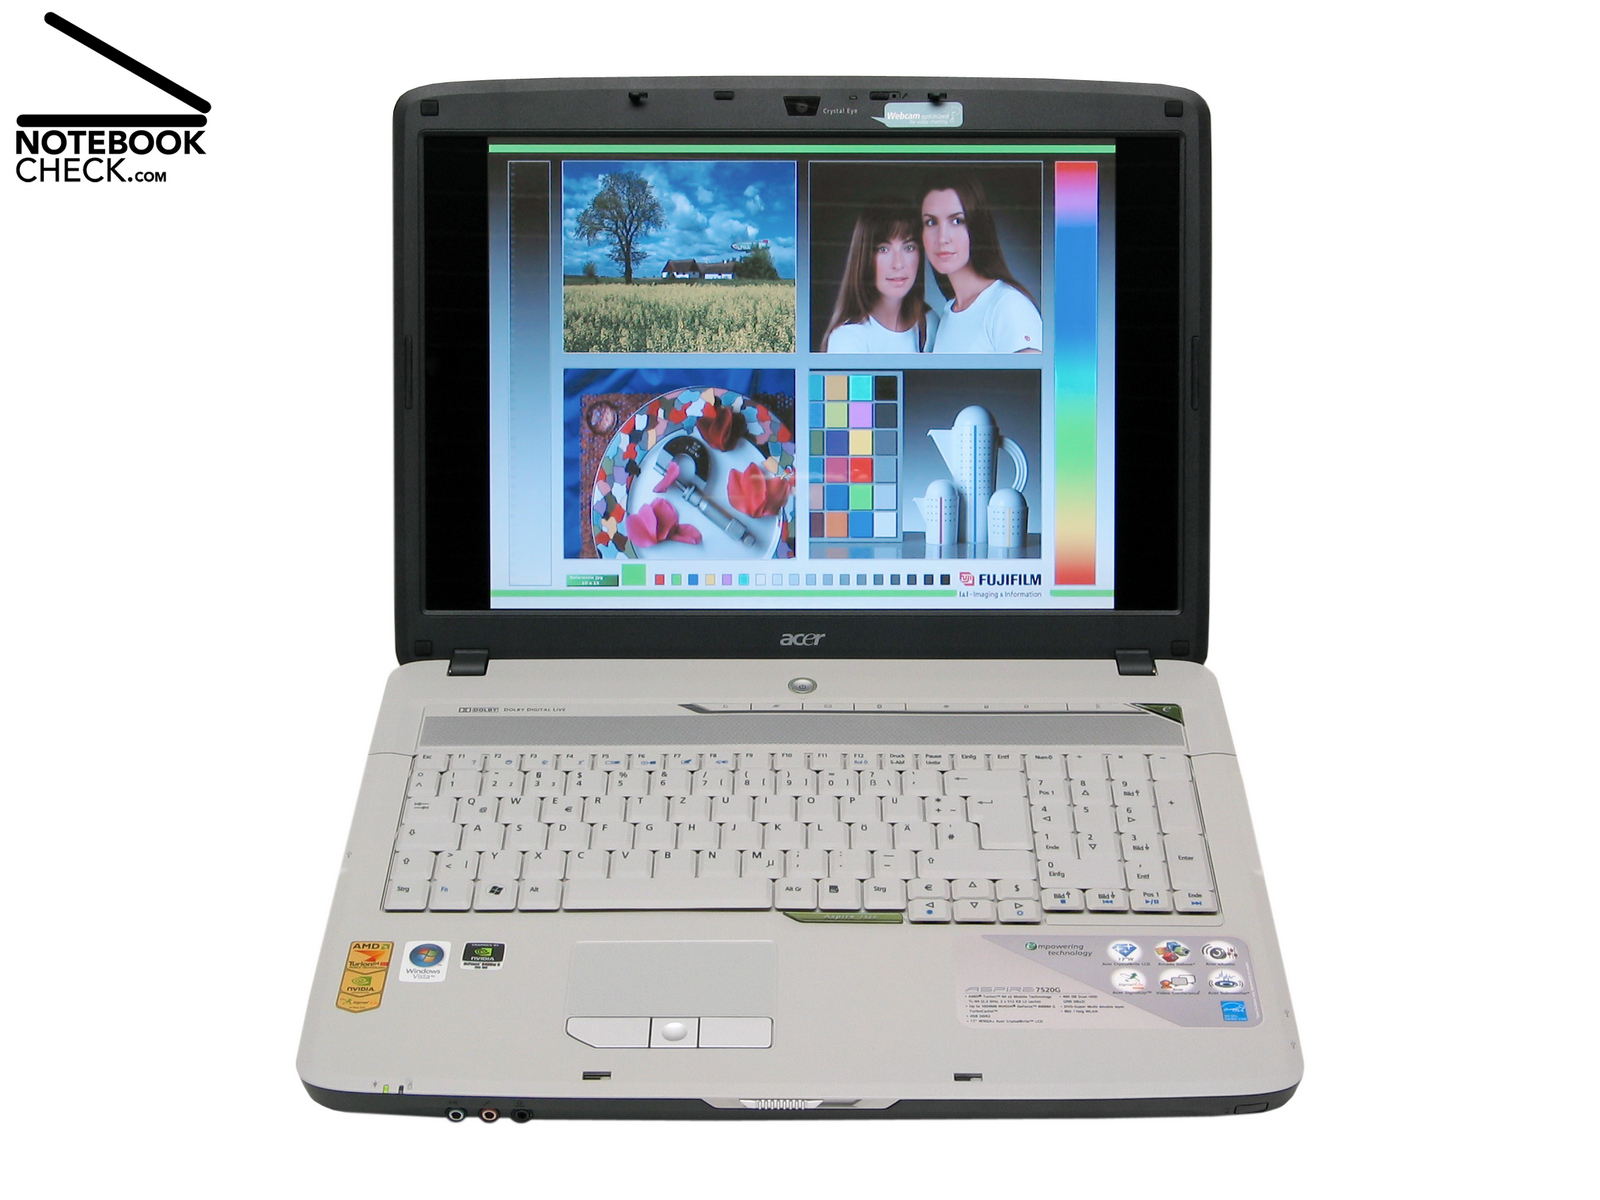 ACER ASPIRE 7520G TOUCHPAD DRIVERS FOR WINDOWS VISTA